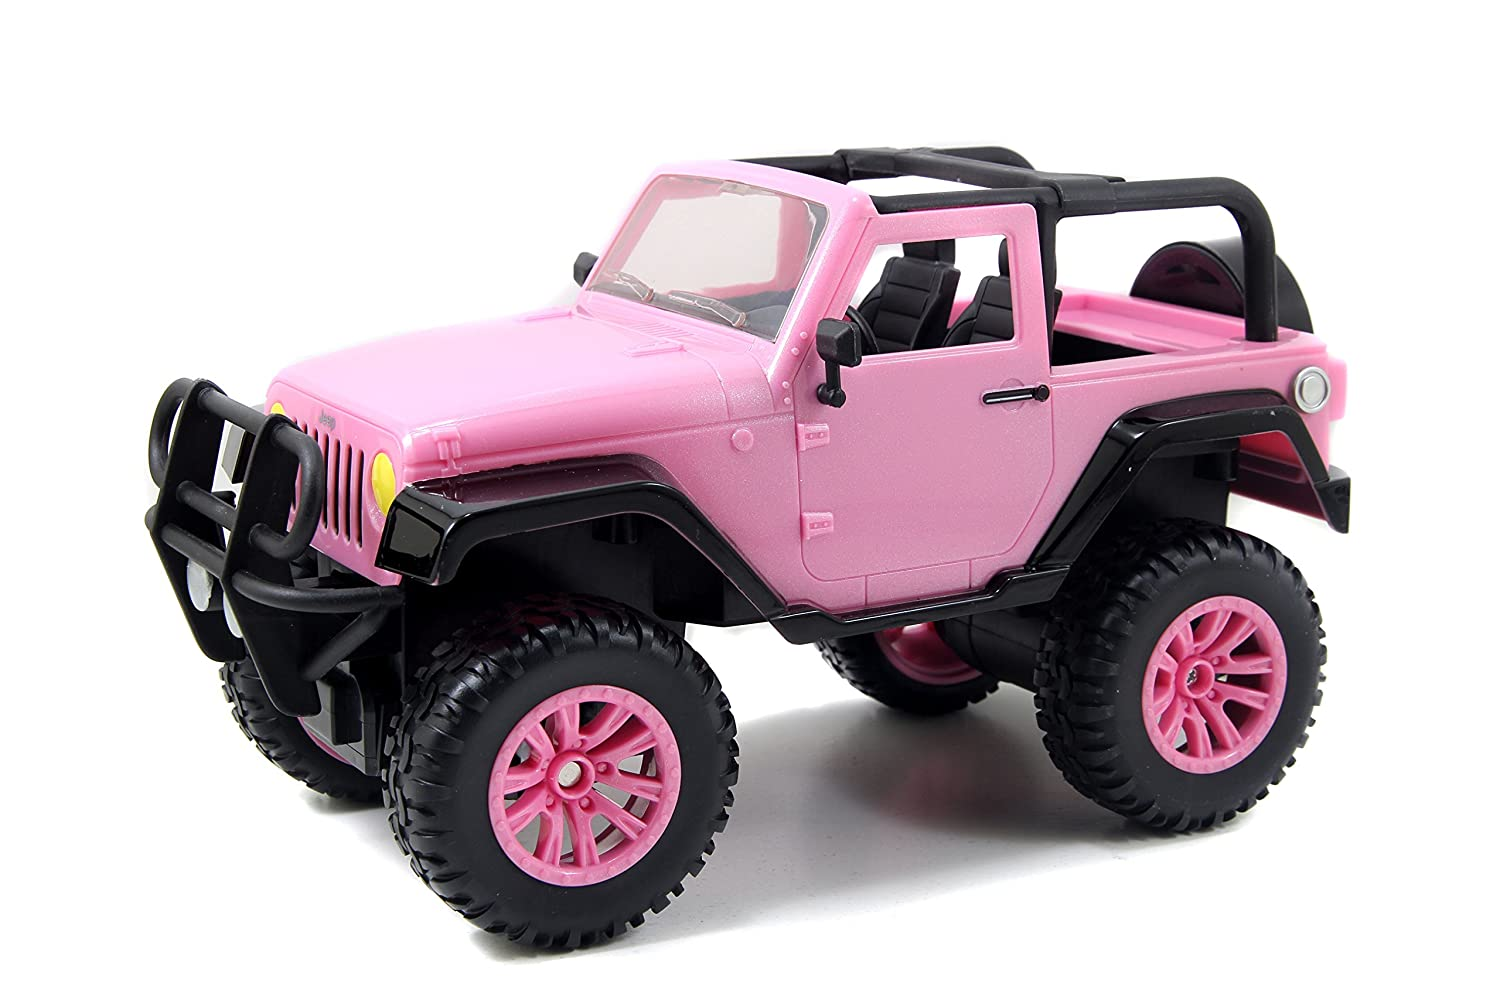 gas powered remote control jeeps with The Best Pink Remote Control Car For Gift on Mercedes Benz Remote Control Electric Ride On G55 Amg G Wagon For Kids W Leather Seat further  as well Mercedes Benz Remote Control Electric Ride On G55 Amg G Wagon For Kids W Leather Seat additionally The Best Pink Remote Control Car For Gift furthermore Watch.